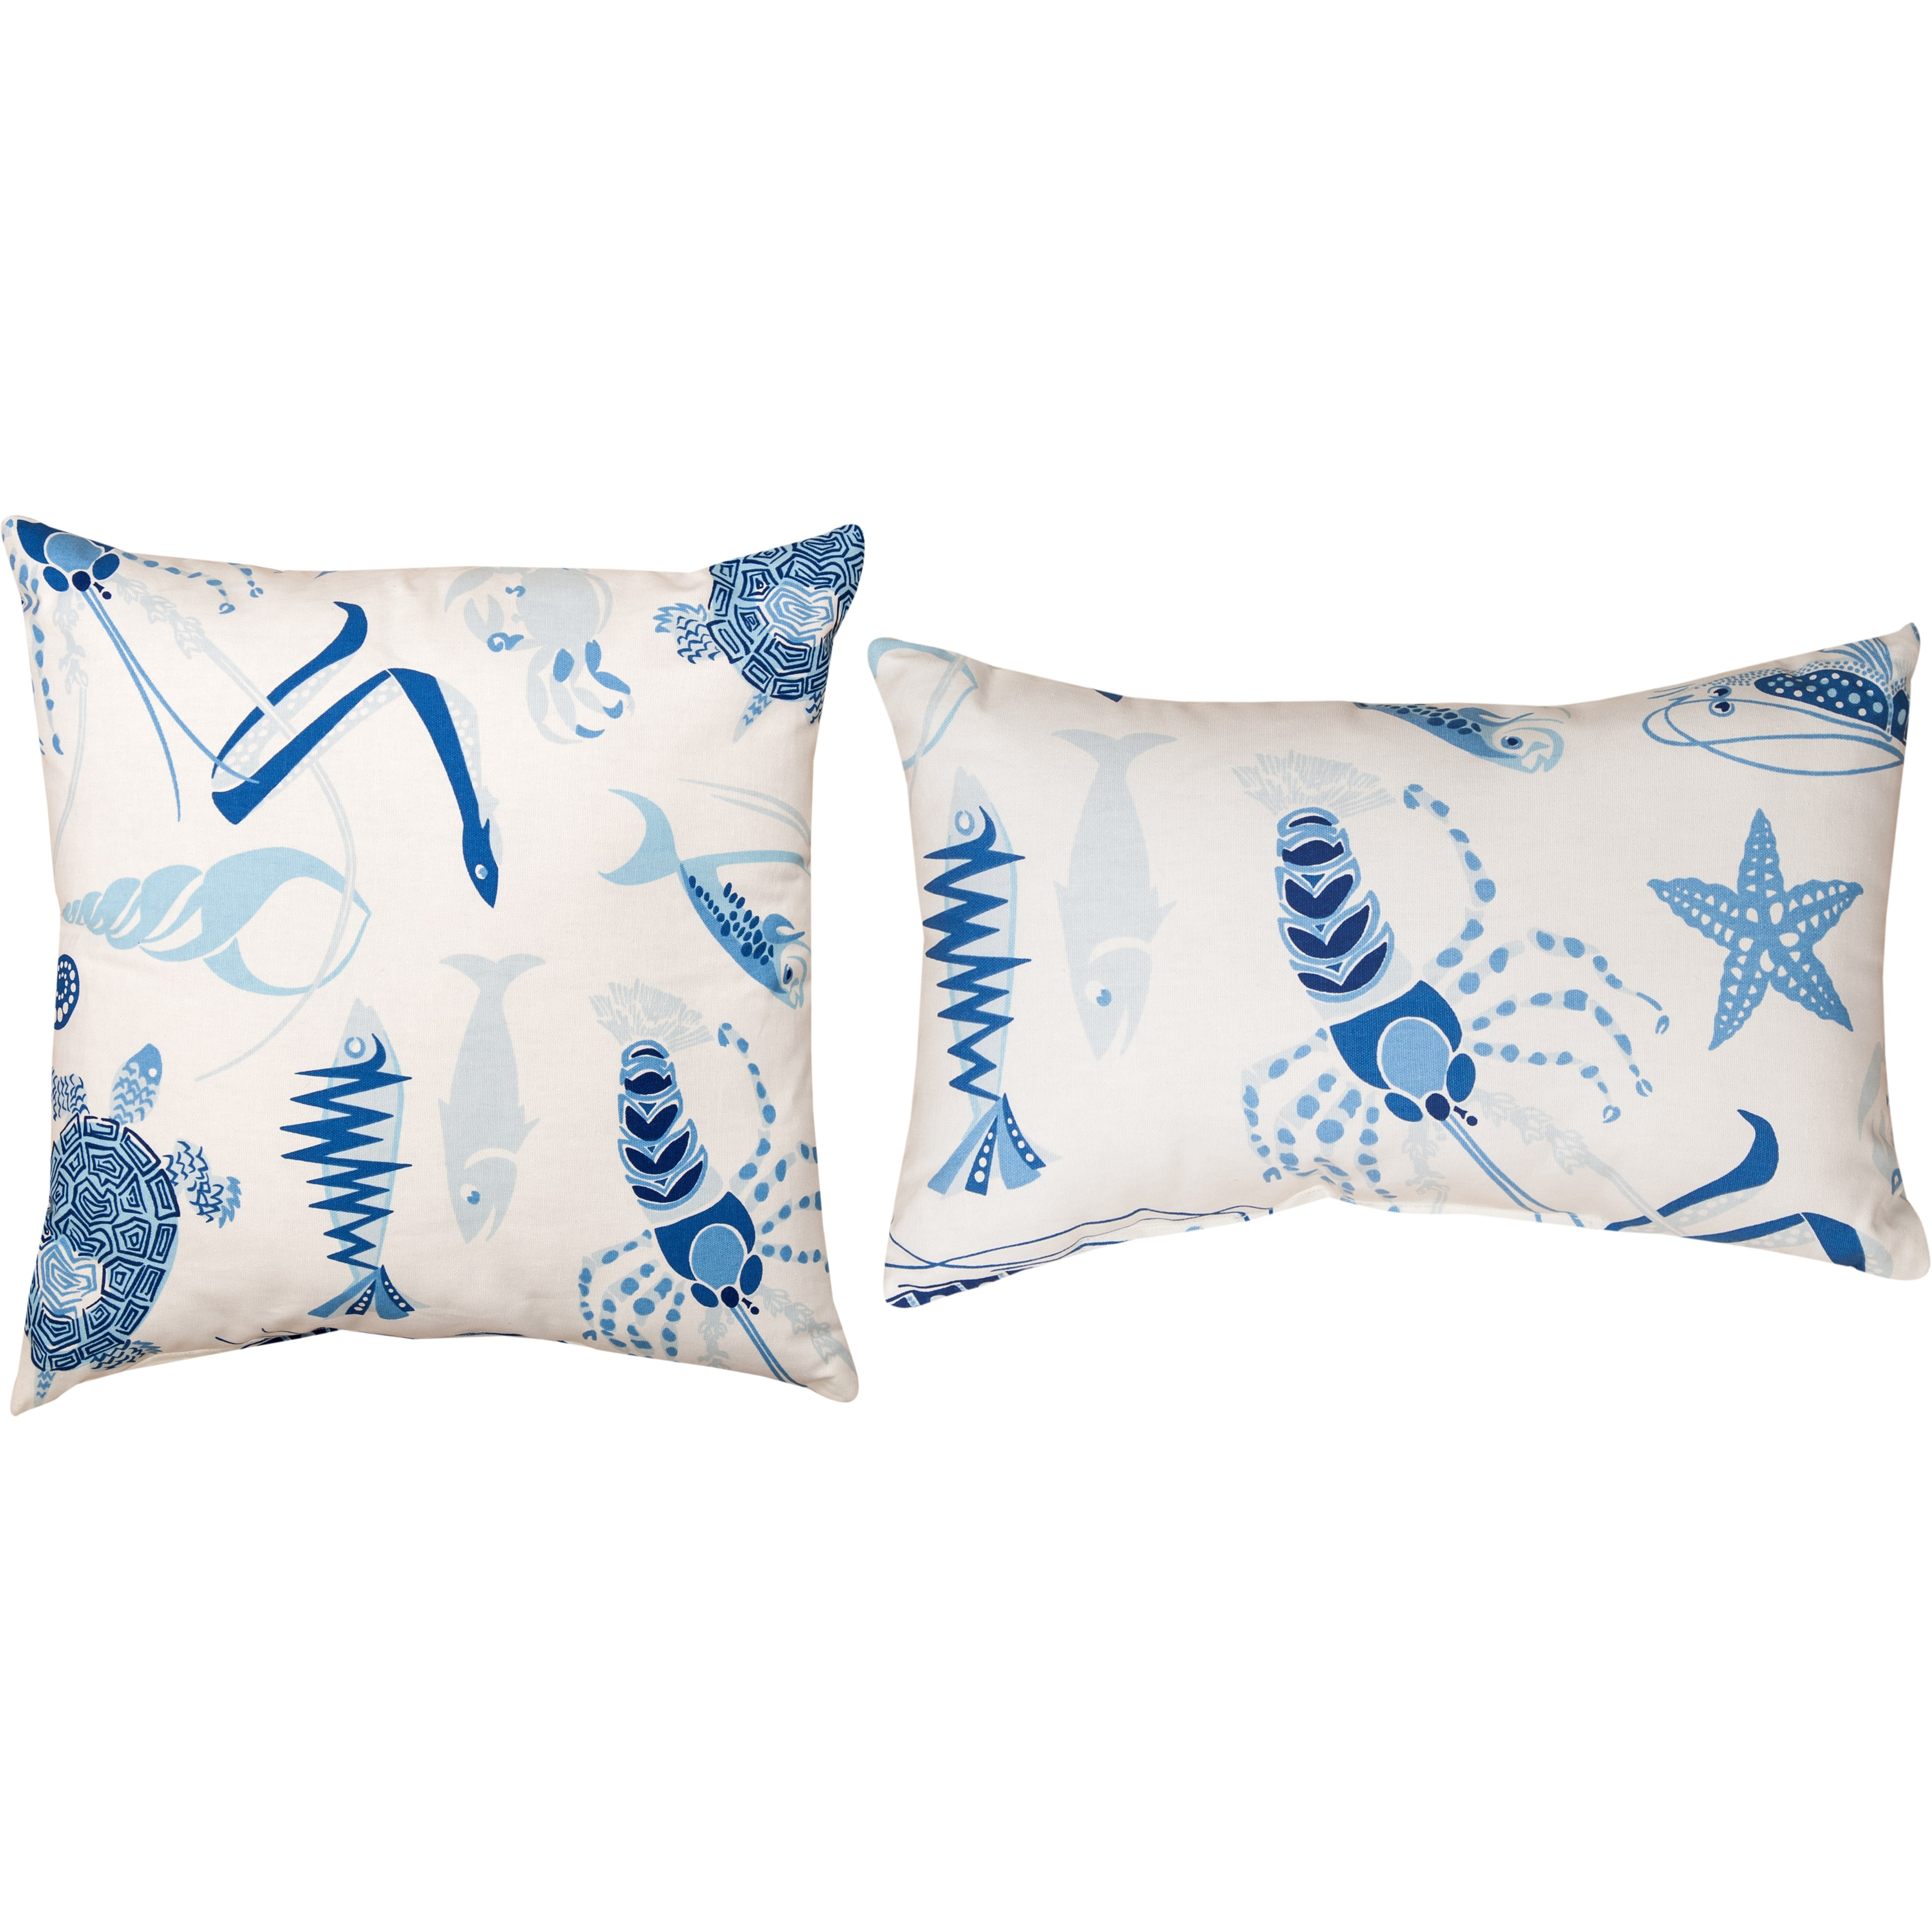 MANUAL WOODWORKERS AND WEAVERS, INC. Nautical Fish Tale Harbor Decorative Pillows (Set of 2)